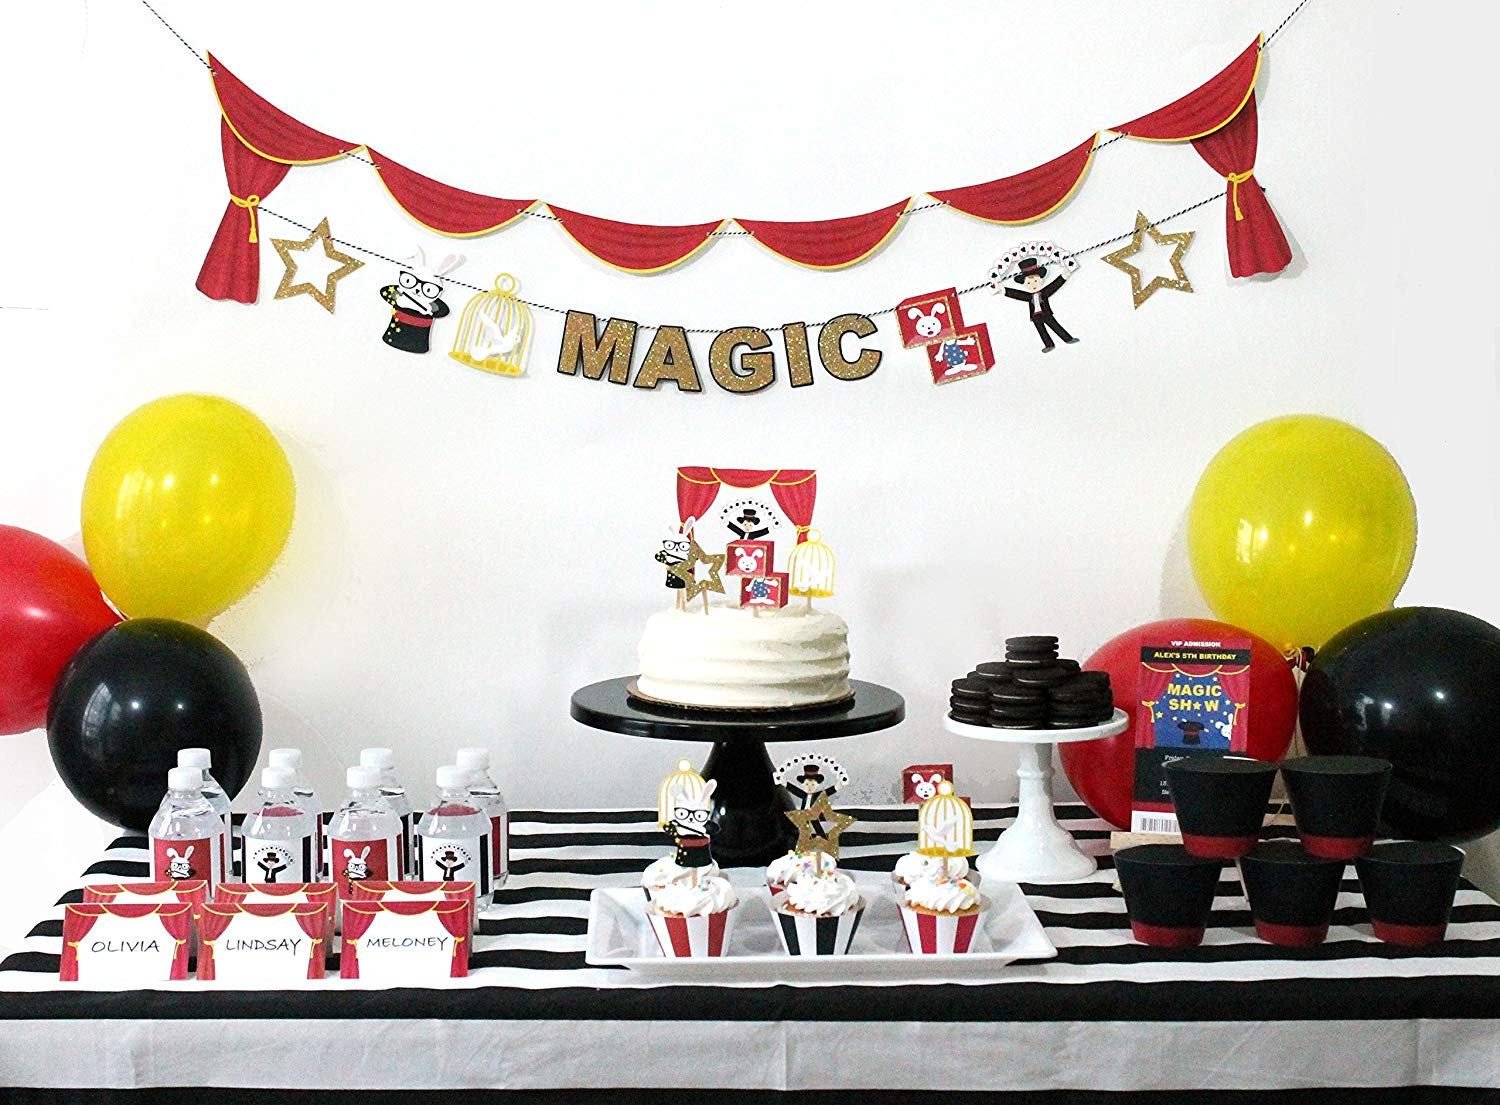 Magic Show - 12 Guest Party Decor Set | Party Kit | Magician Party Decorations | Magic Show Theme | Party Supply | Birthday Banner, Cupcake Toppers, Magician Hat